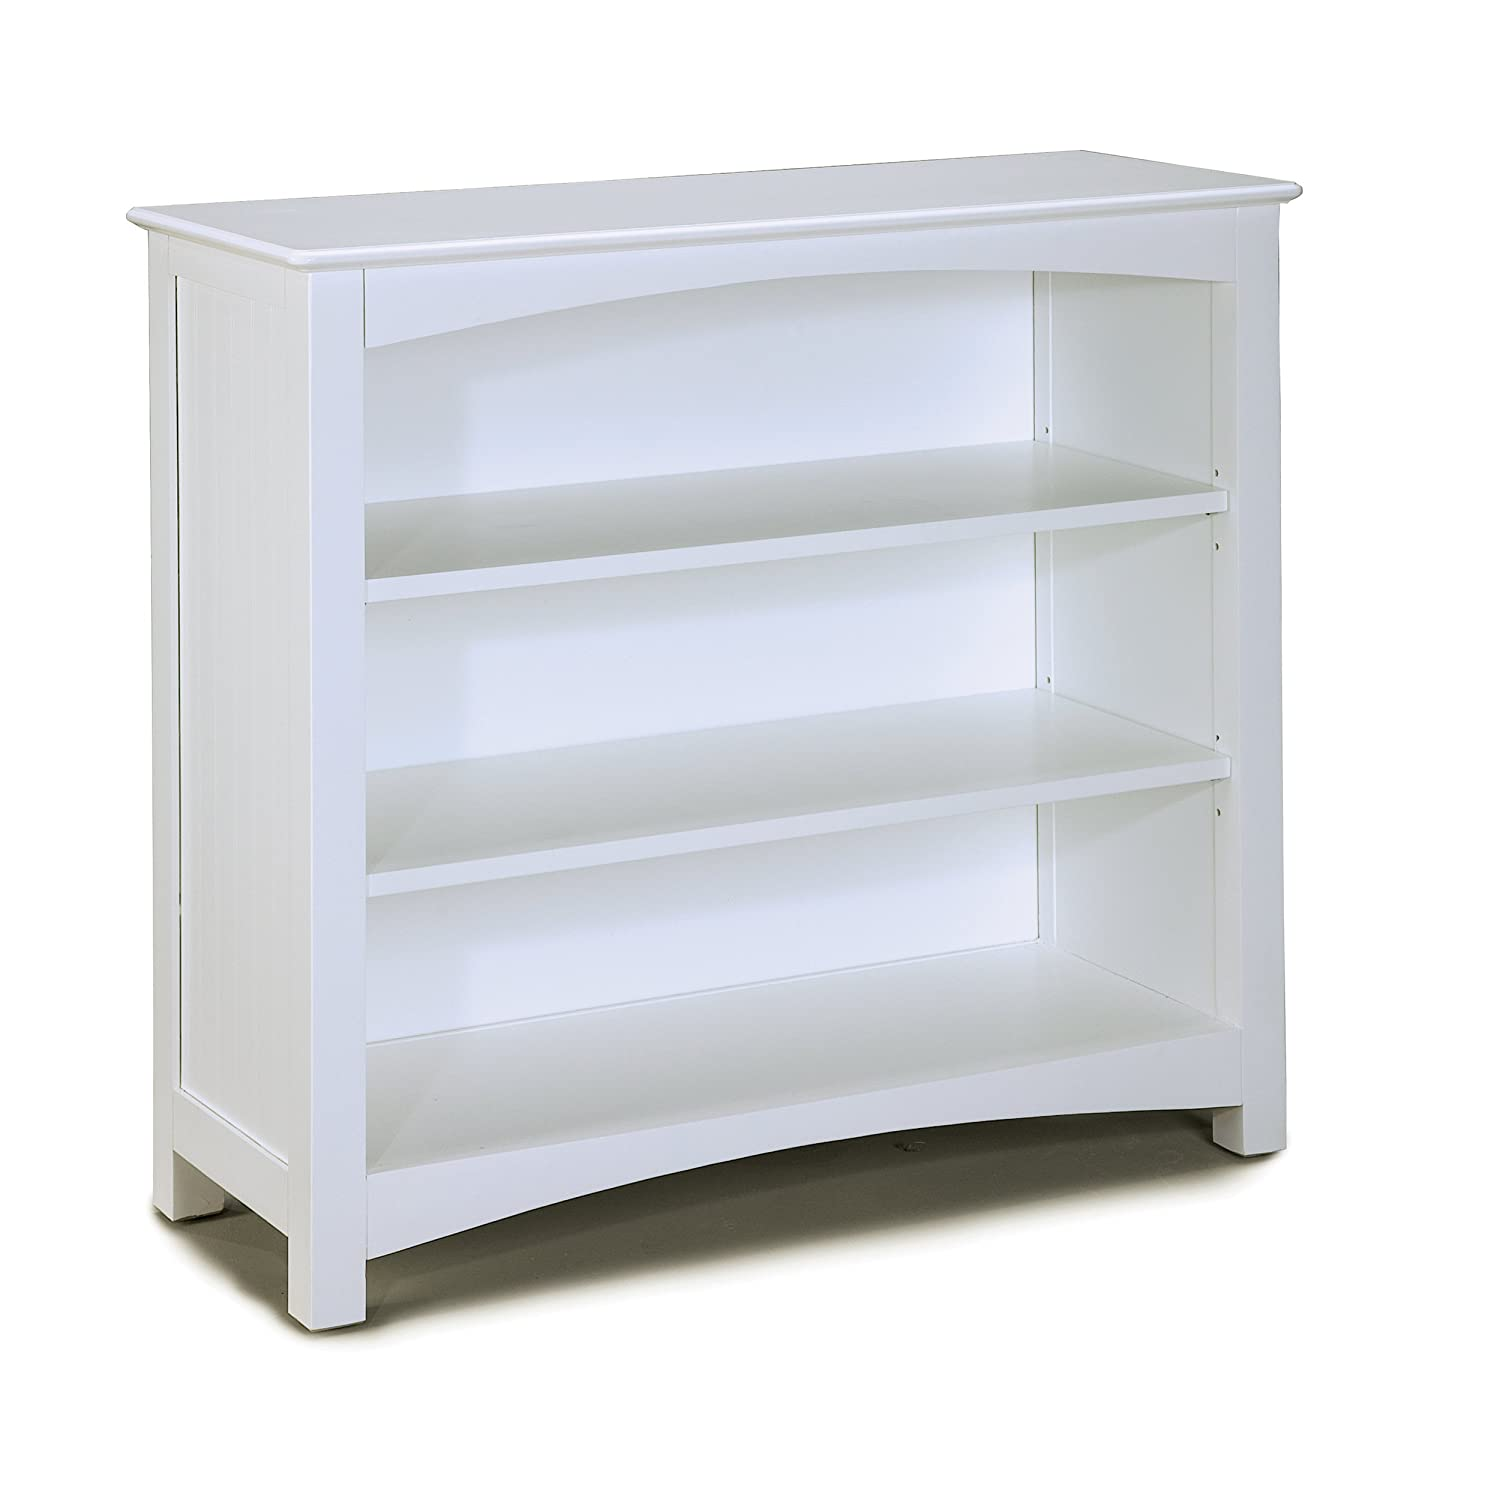 Amazon com bolton furniture wakefield small bookcase with two adjustable shelves white kitchen dining